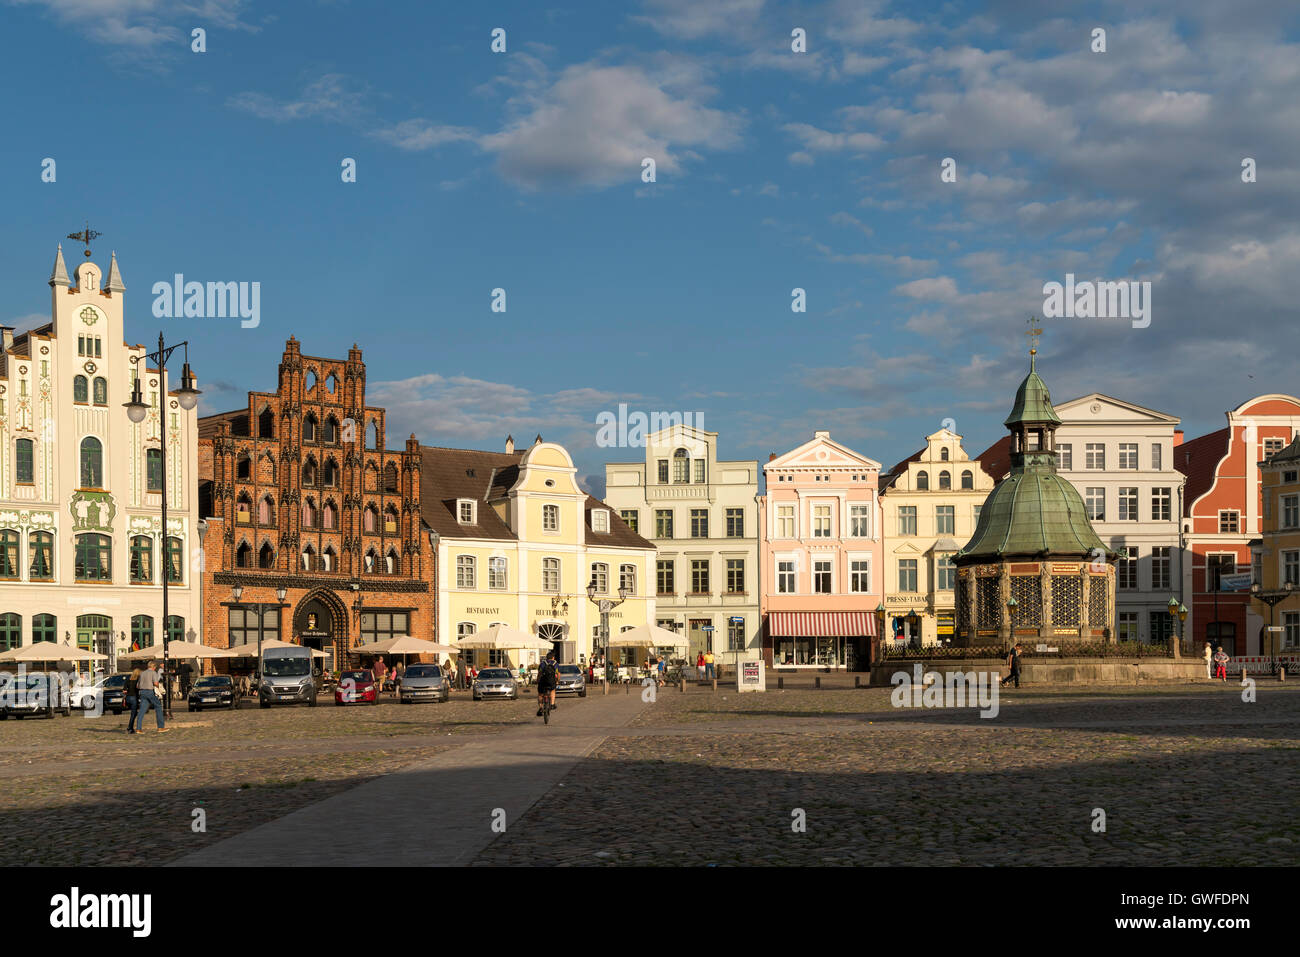 Market Square with the landmark waterworks or Wasserkunst and patrician's home the Alter Schwede, Hanseatic - Stock Image